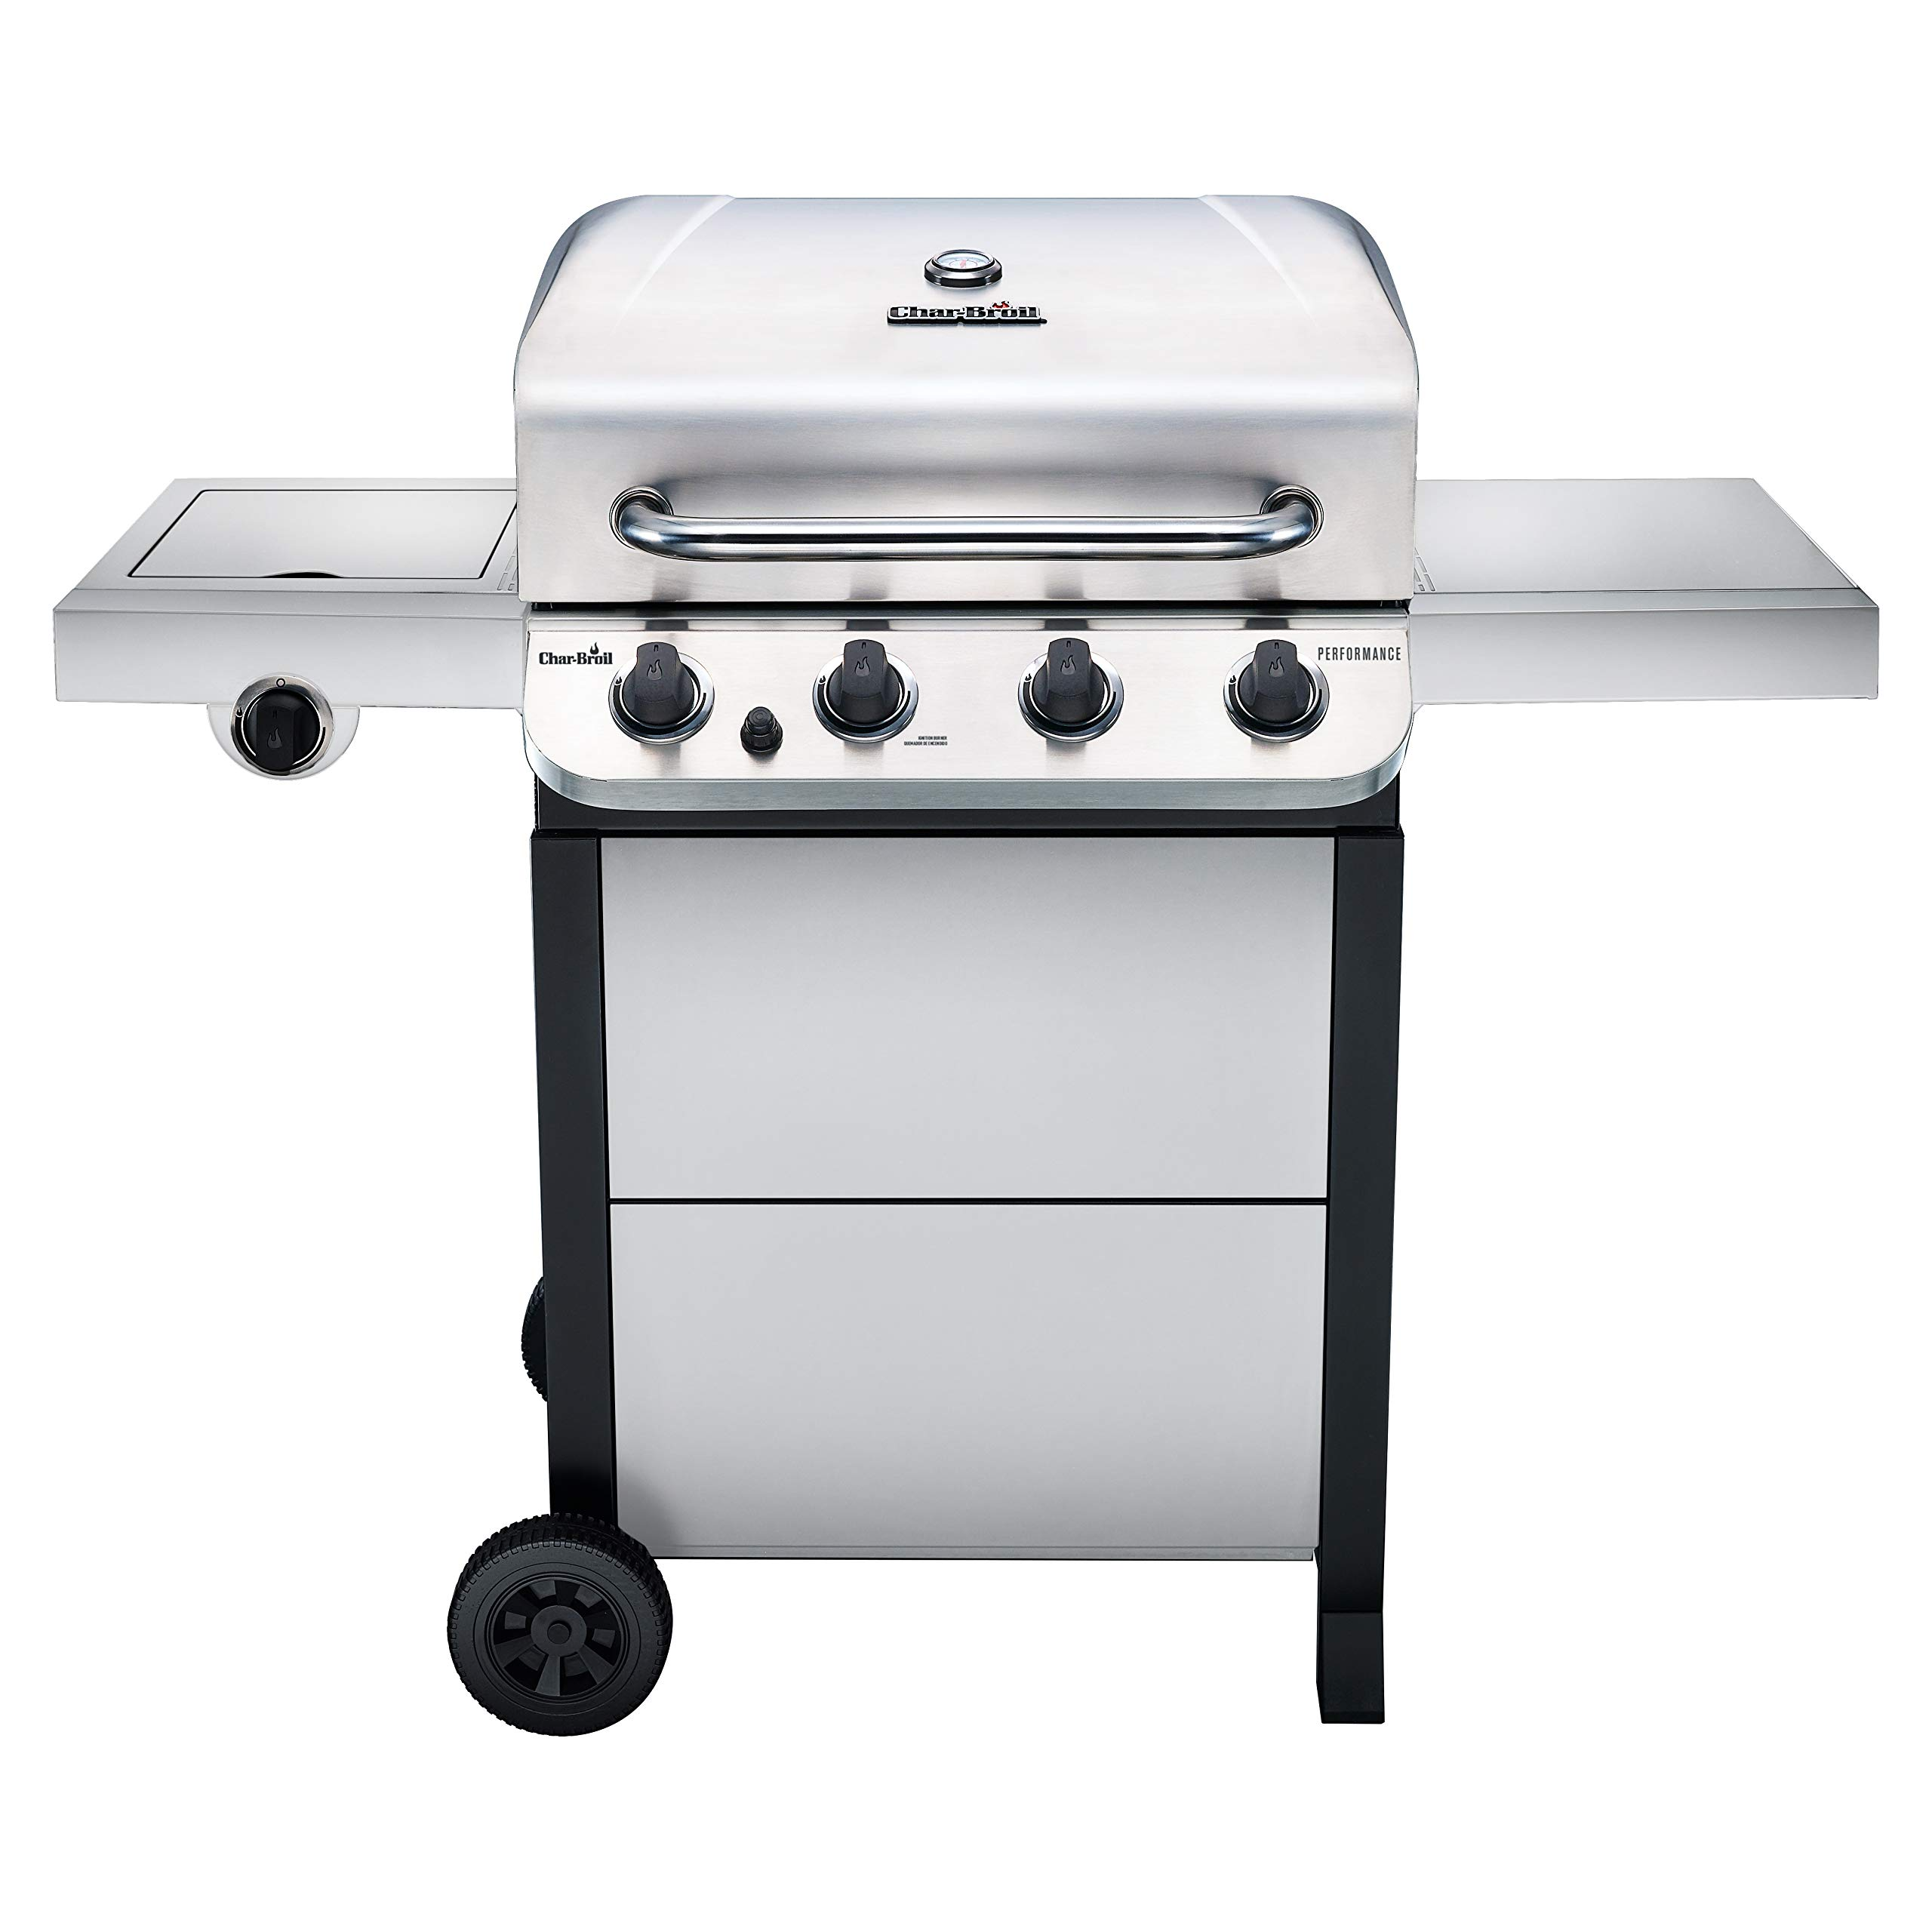 Char-Broil 463377319 Performance Stainless Steel 4-Burner Cart Style Gas Grill by Char-Broil